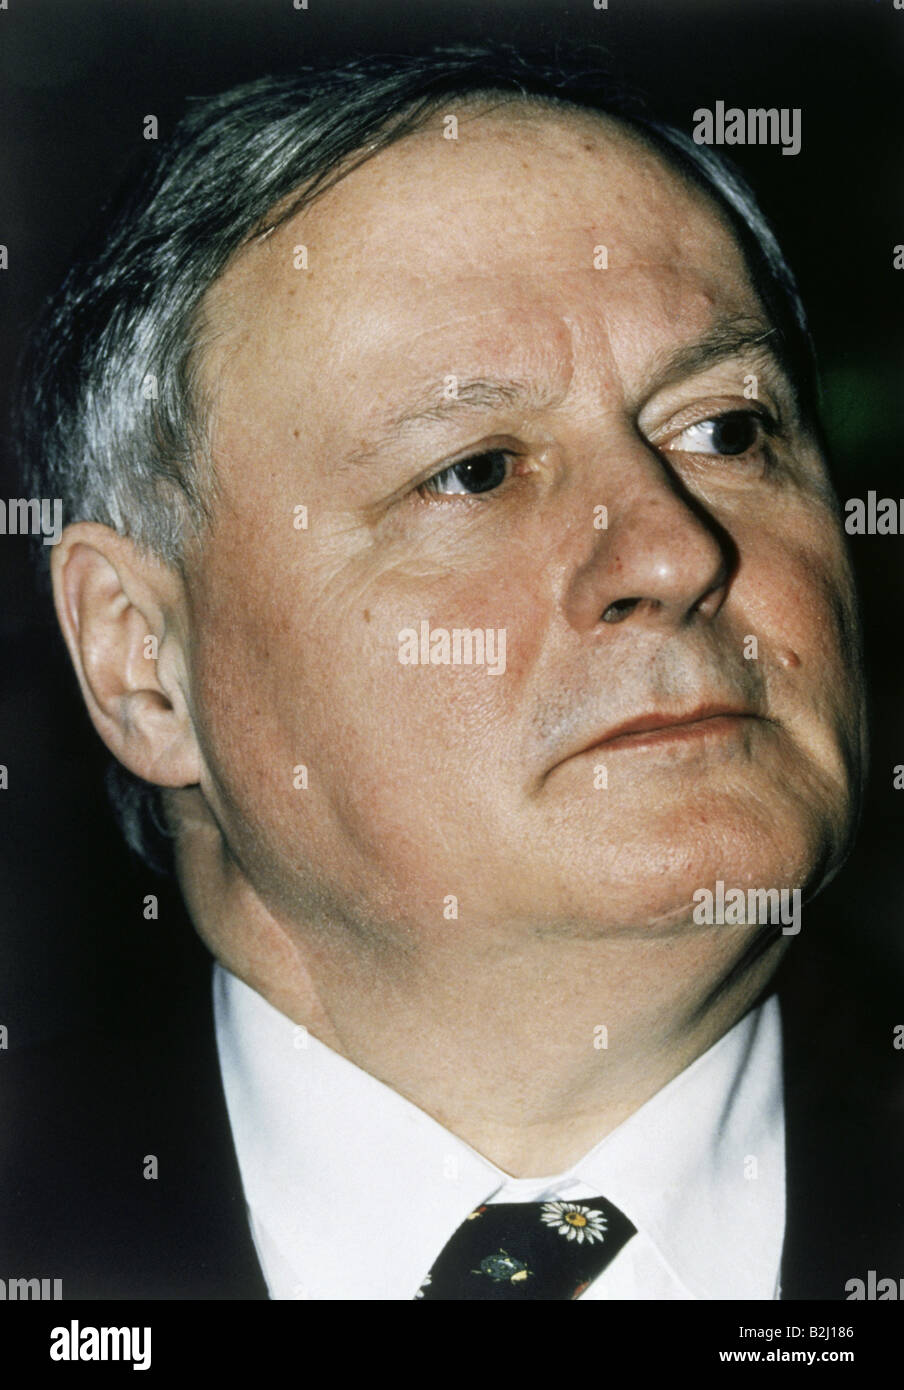 Lafontaine, Oskar, * 16.9.1943, German politician, Federal Minister of Finance 1998 - 1999, portrait, , Additional - Stock Image